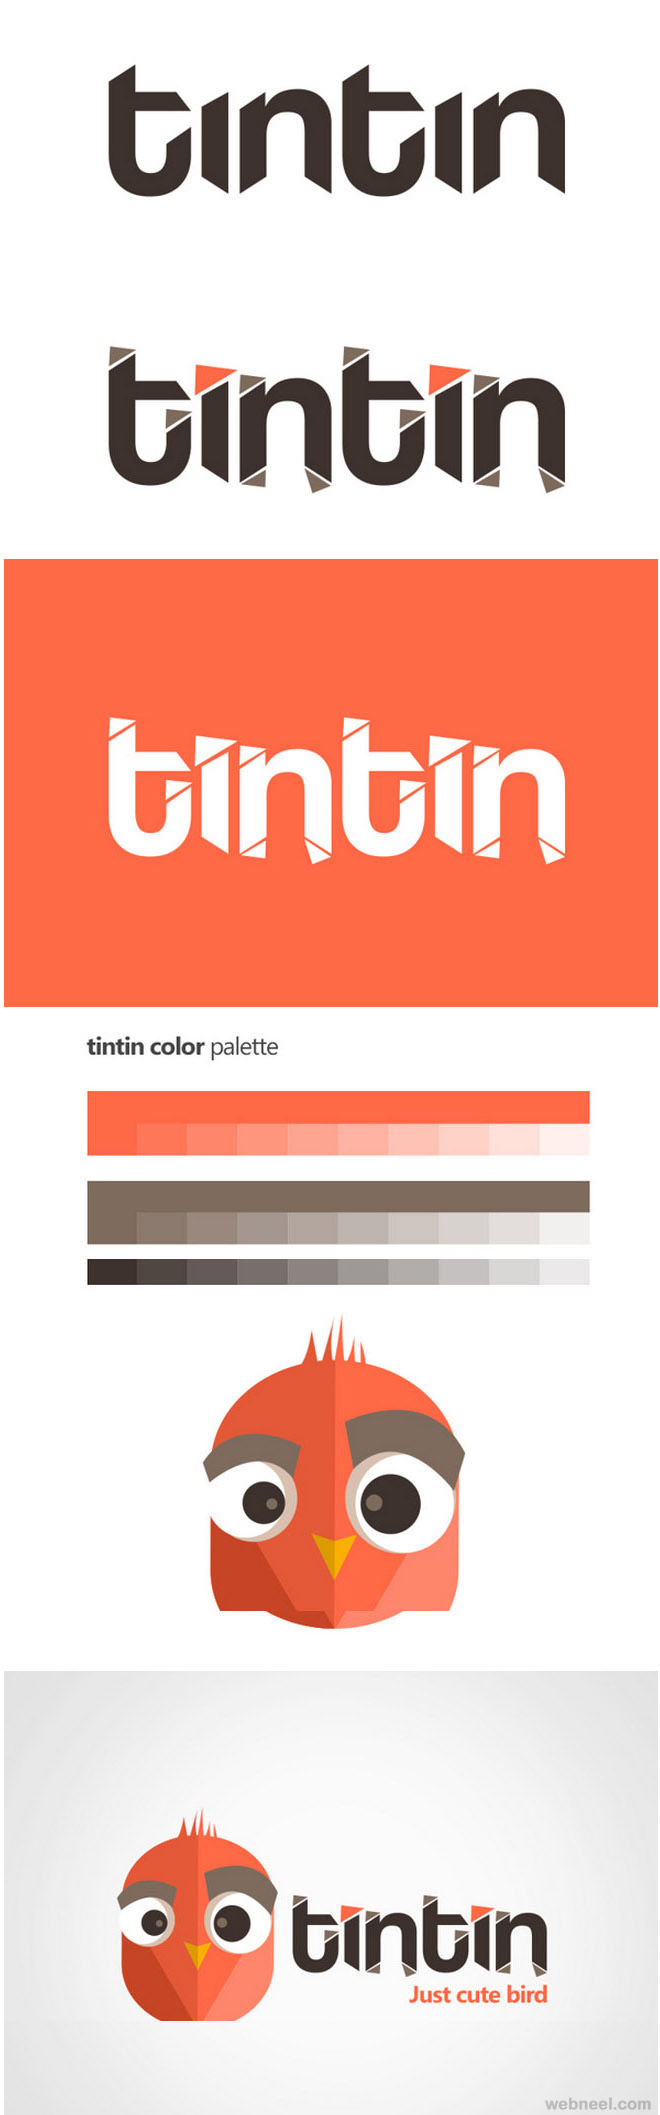 tintin best branding design by nimbus